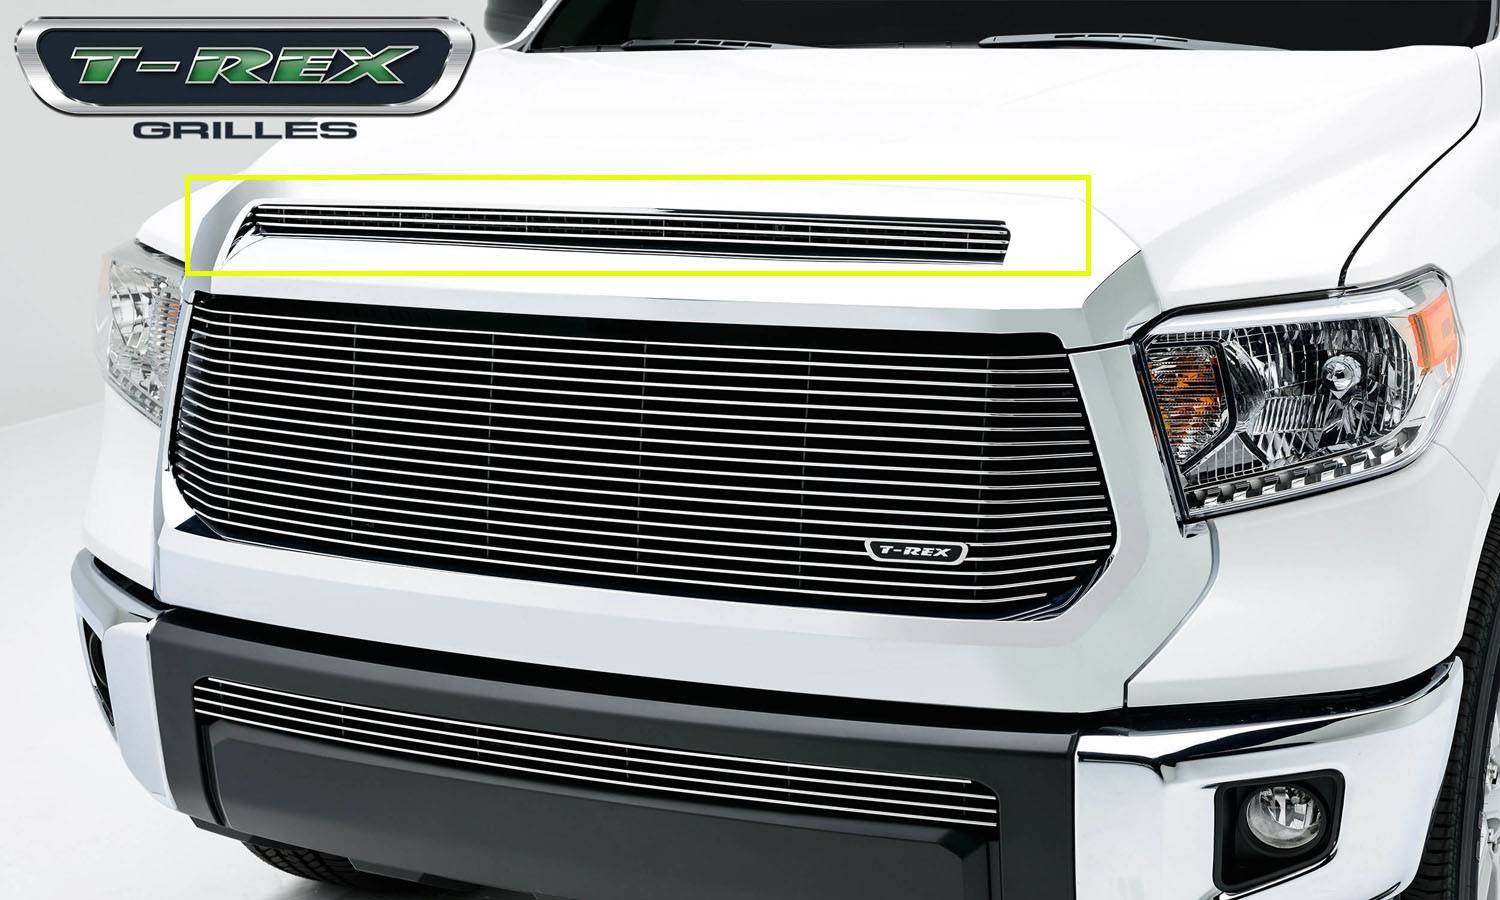 T-REX Toyota Tundra  Billet Grille, Hood, Overlay, 1 Pc, Polished Black Powdercoated Aluminum Bars - Pt # 21964